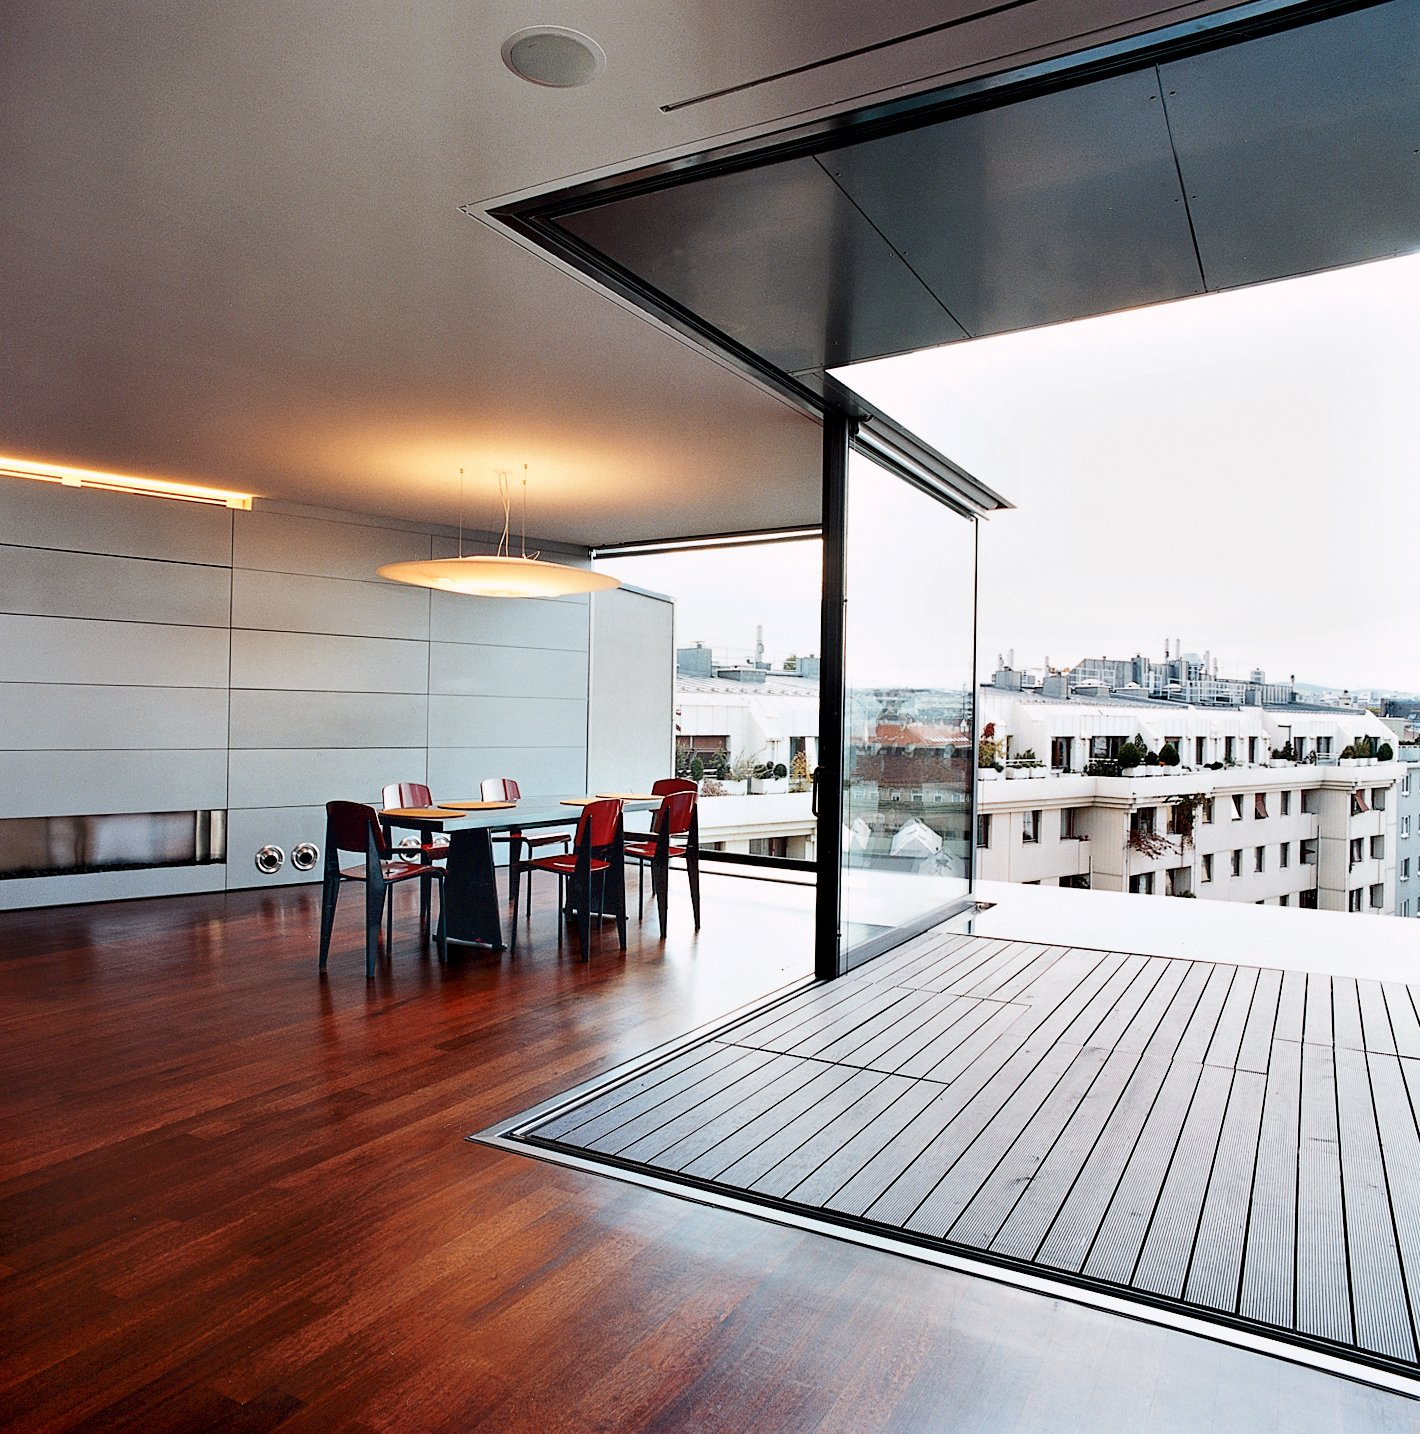 In Vienna, a dazzling penthouse by Delugan Meissl has boldly inserted itself between traditional rooftops of the city's Wieden district like a recently landed alien intruder. The engineering of House Ray 1's load-bearing structure was extremely complex. Since the house had to be built on top of an old building, the architects opted for lightweight steel skeleton construction. The living/dining area has sliding glass walls that open to the back terrace and pool.  Photo 4 of 16 in The Penthouse Has Landed